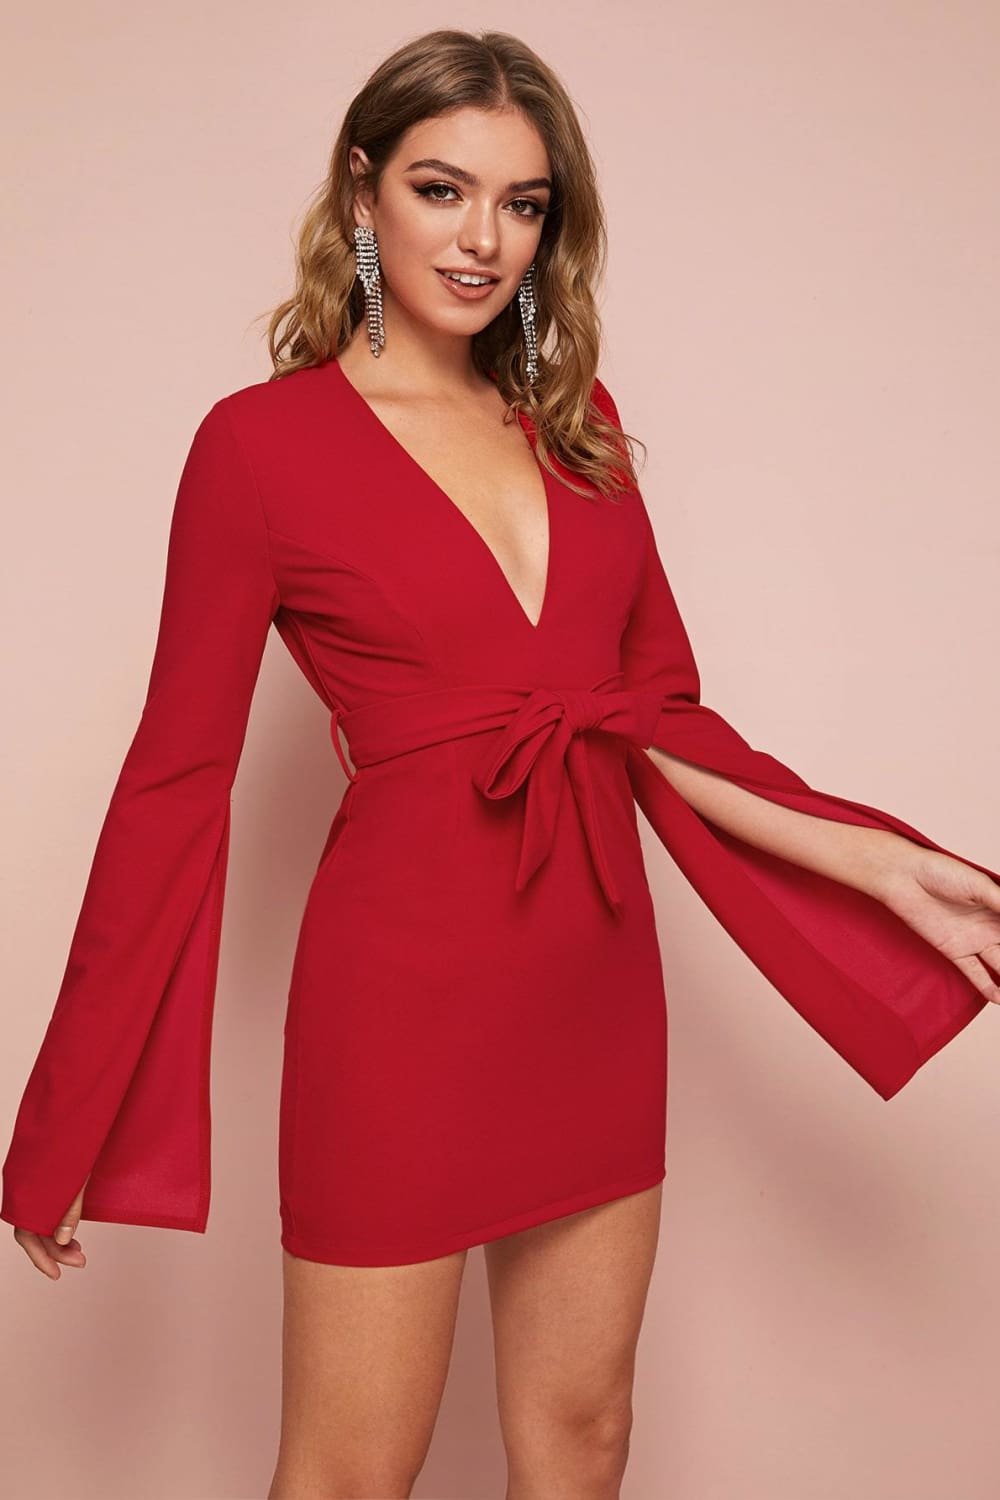 Champagne Showers Red Fitted Dress - Dresses - Evan & Jane